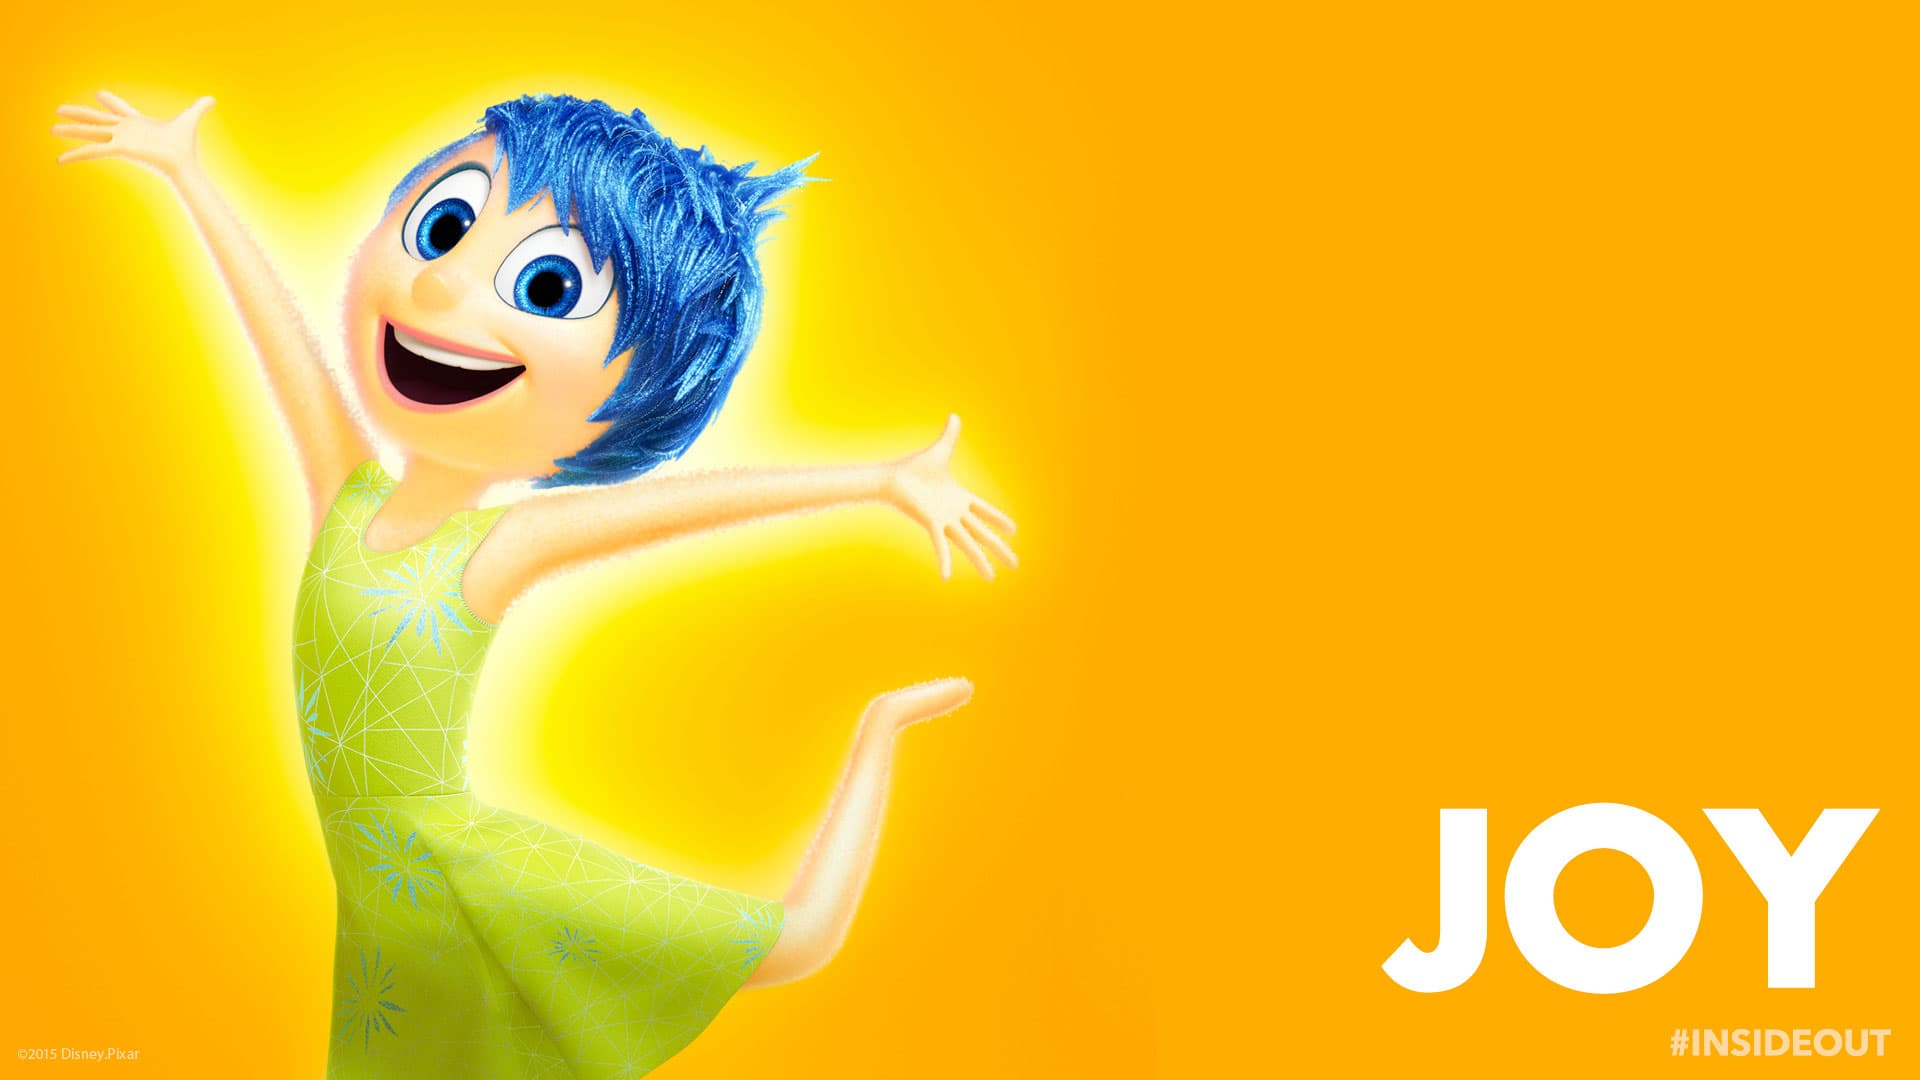 Inside Out Joy wallpapers